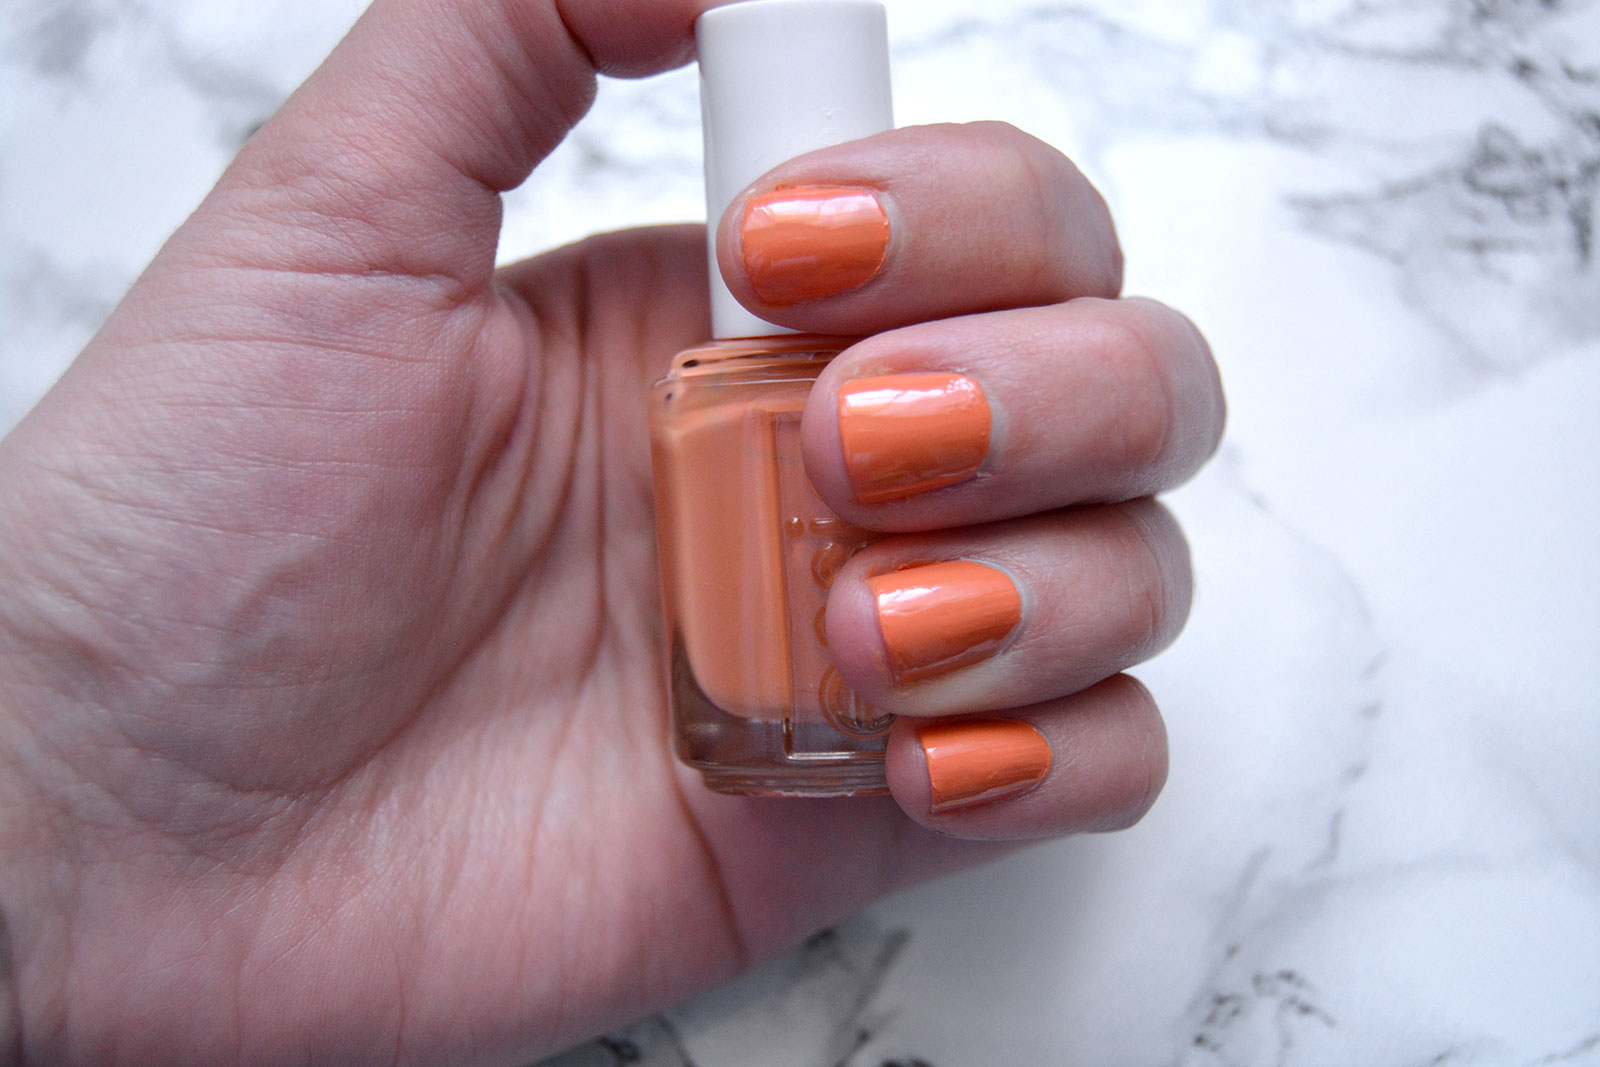 Essie Nail Polish in Taj Ma Haul, Review & Swatch - A Thing of Beauty